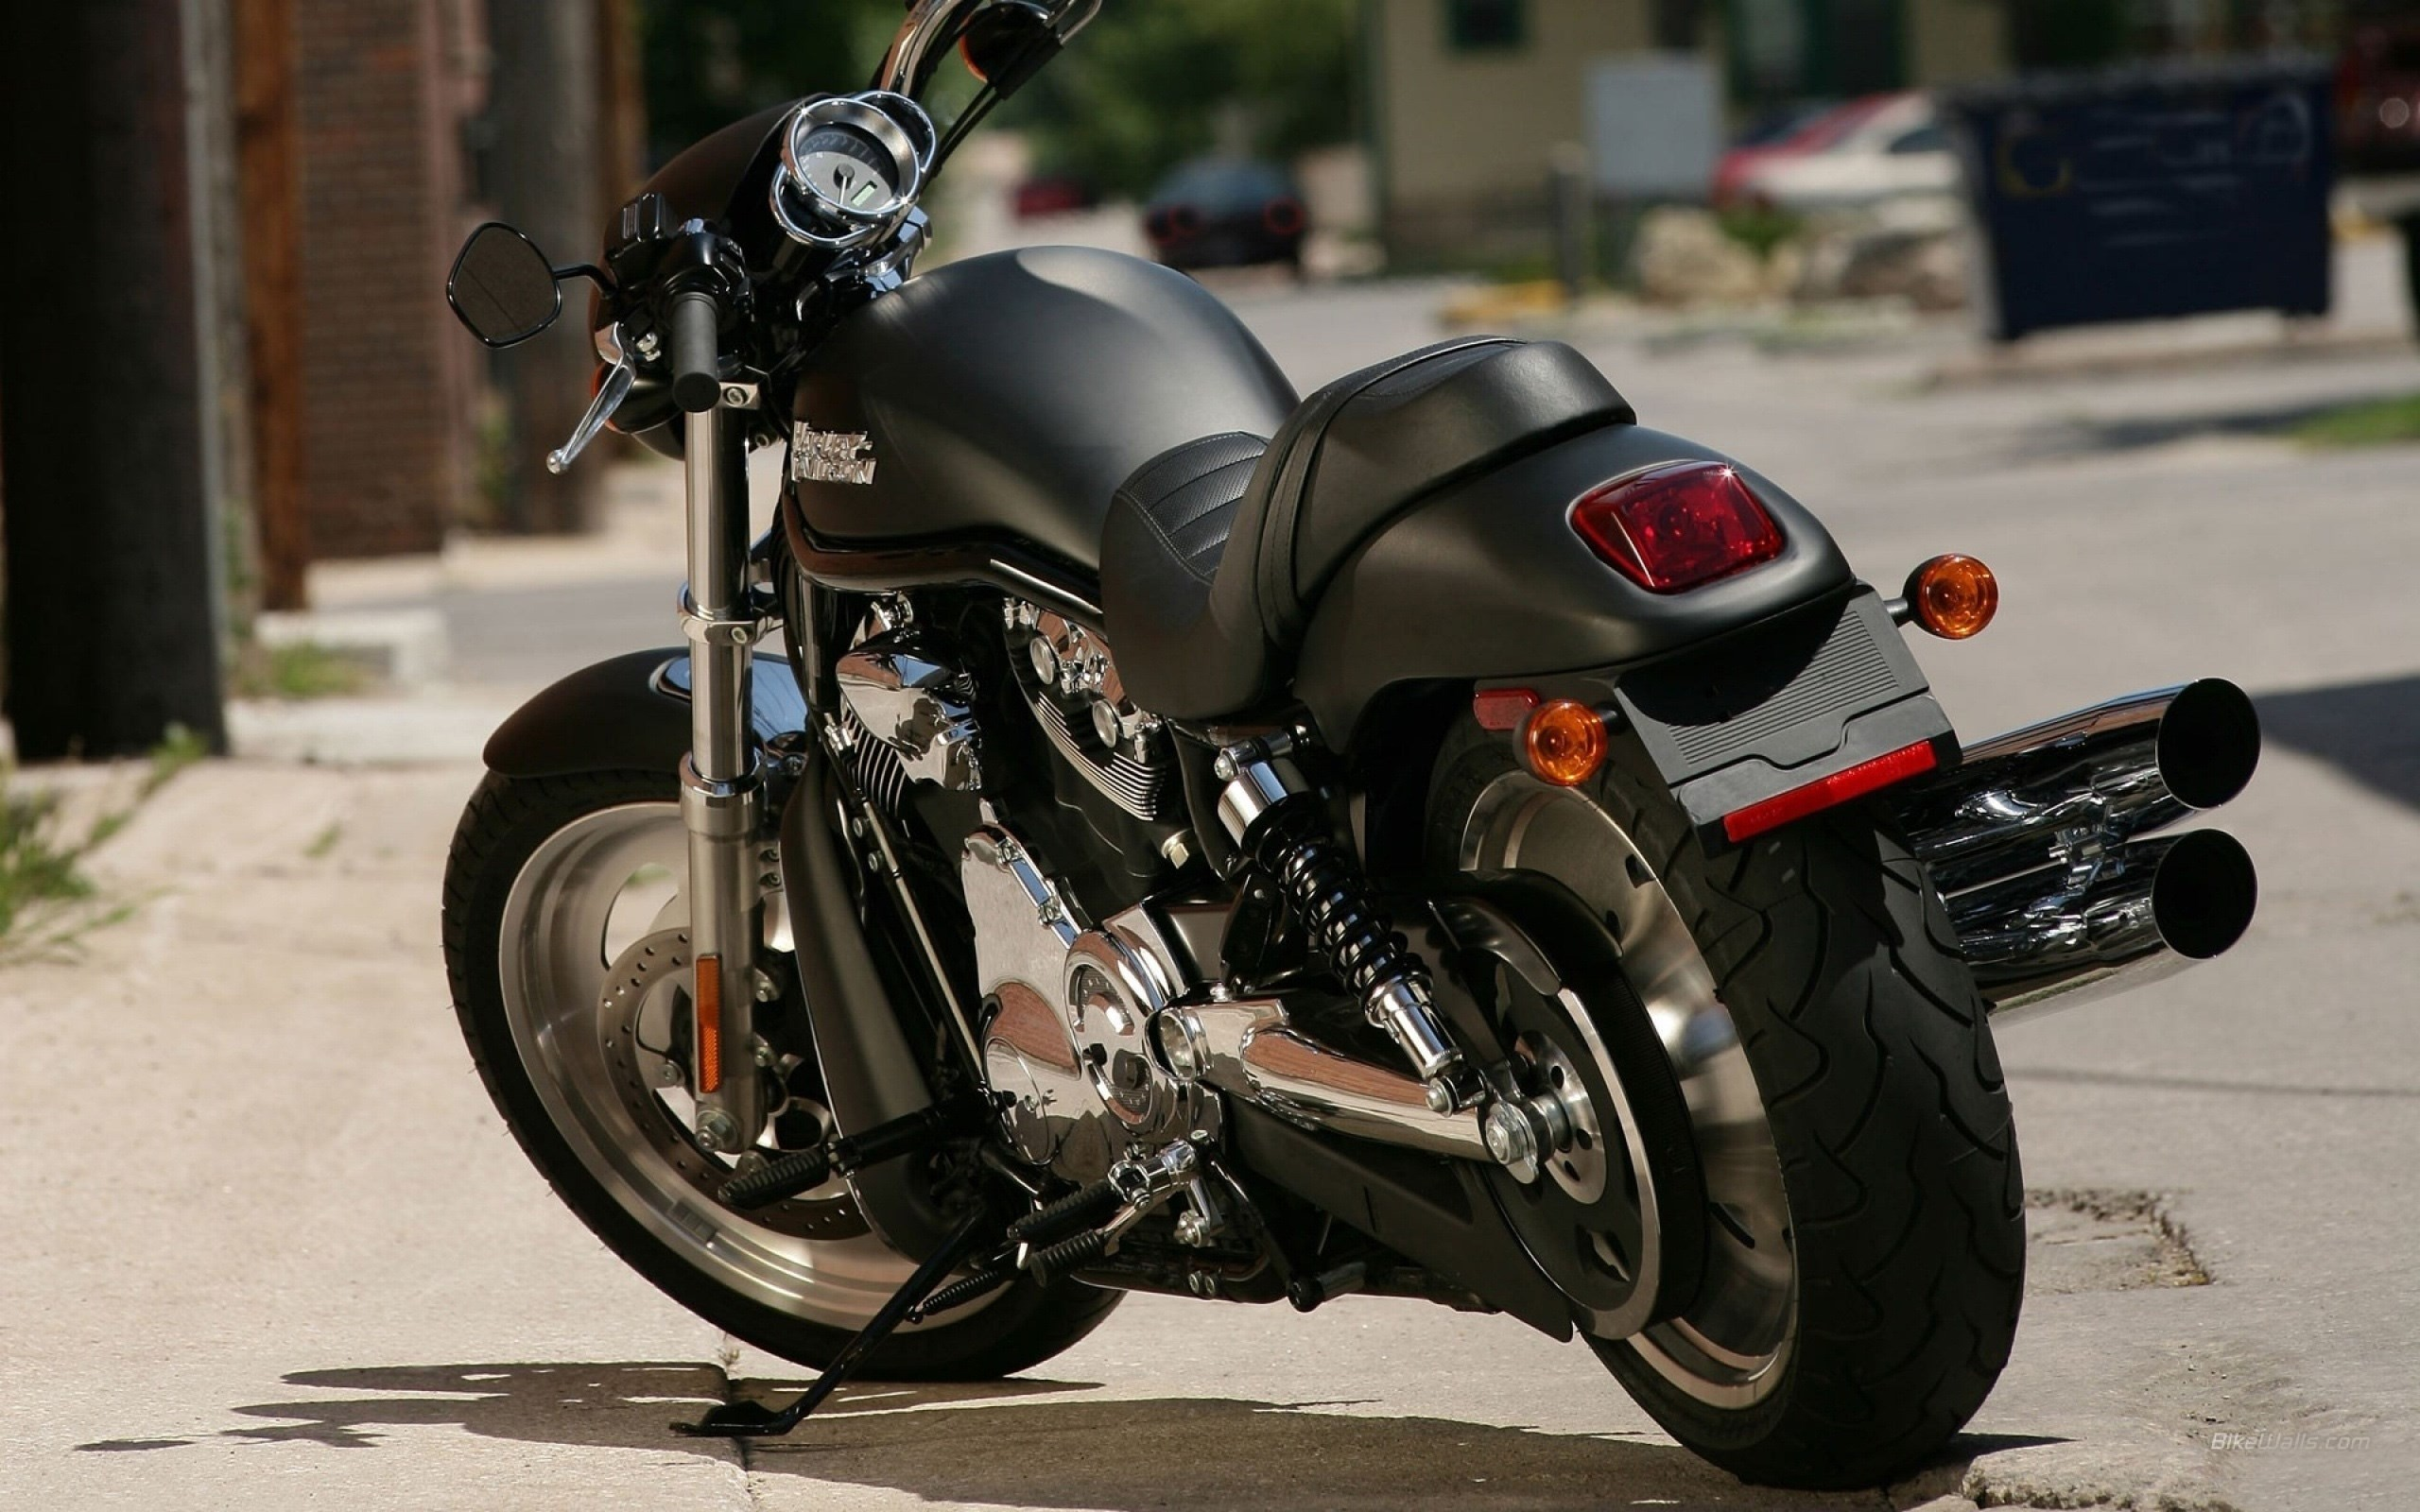 2560x1600 harley davidson back view bike wallpaper HD